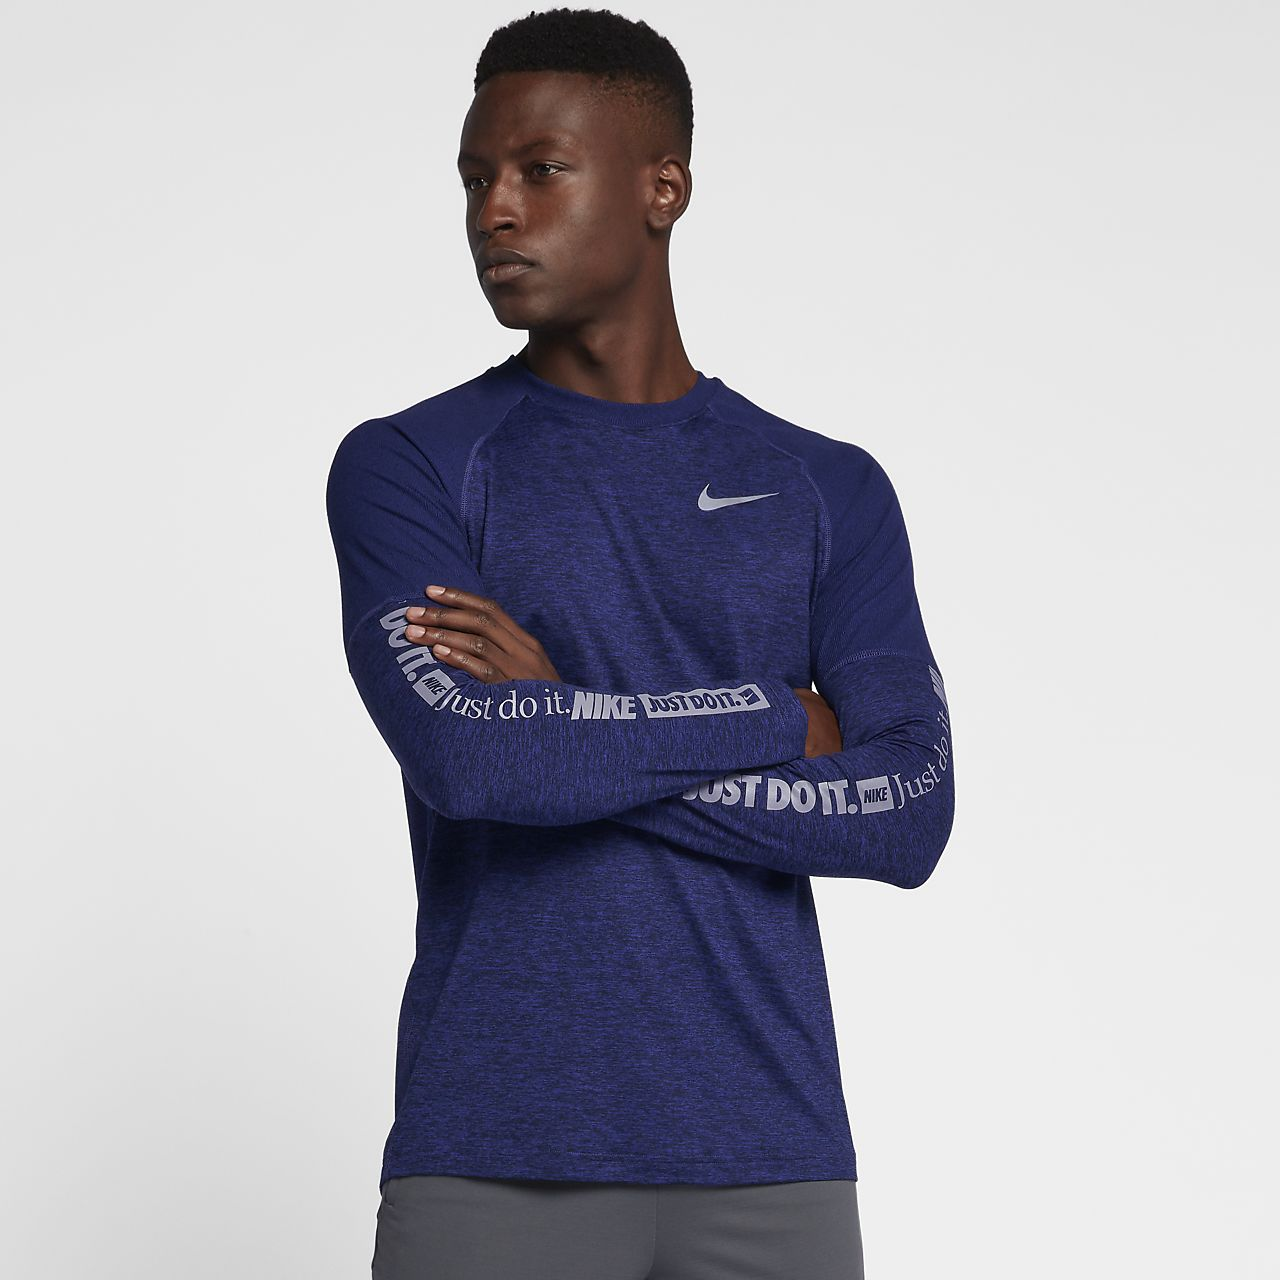 6df3334f2 Nike Men's Long-Sleeve Running Crew. Nike.com AT